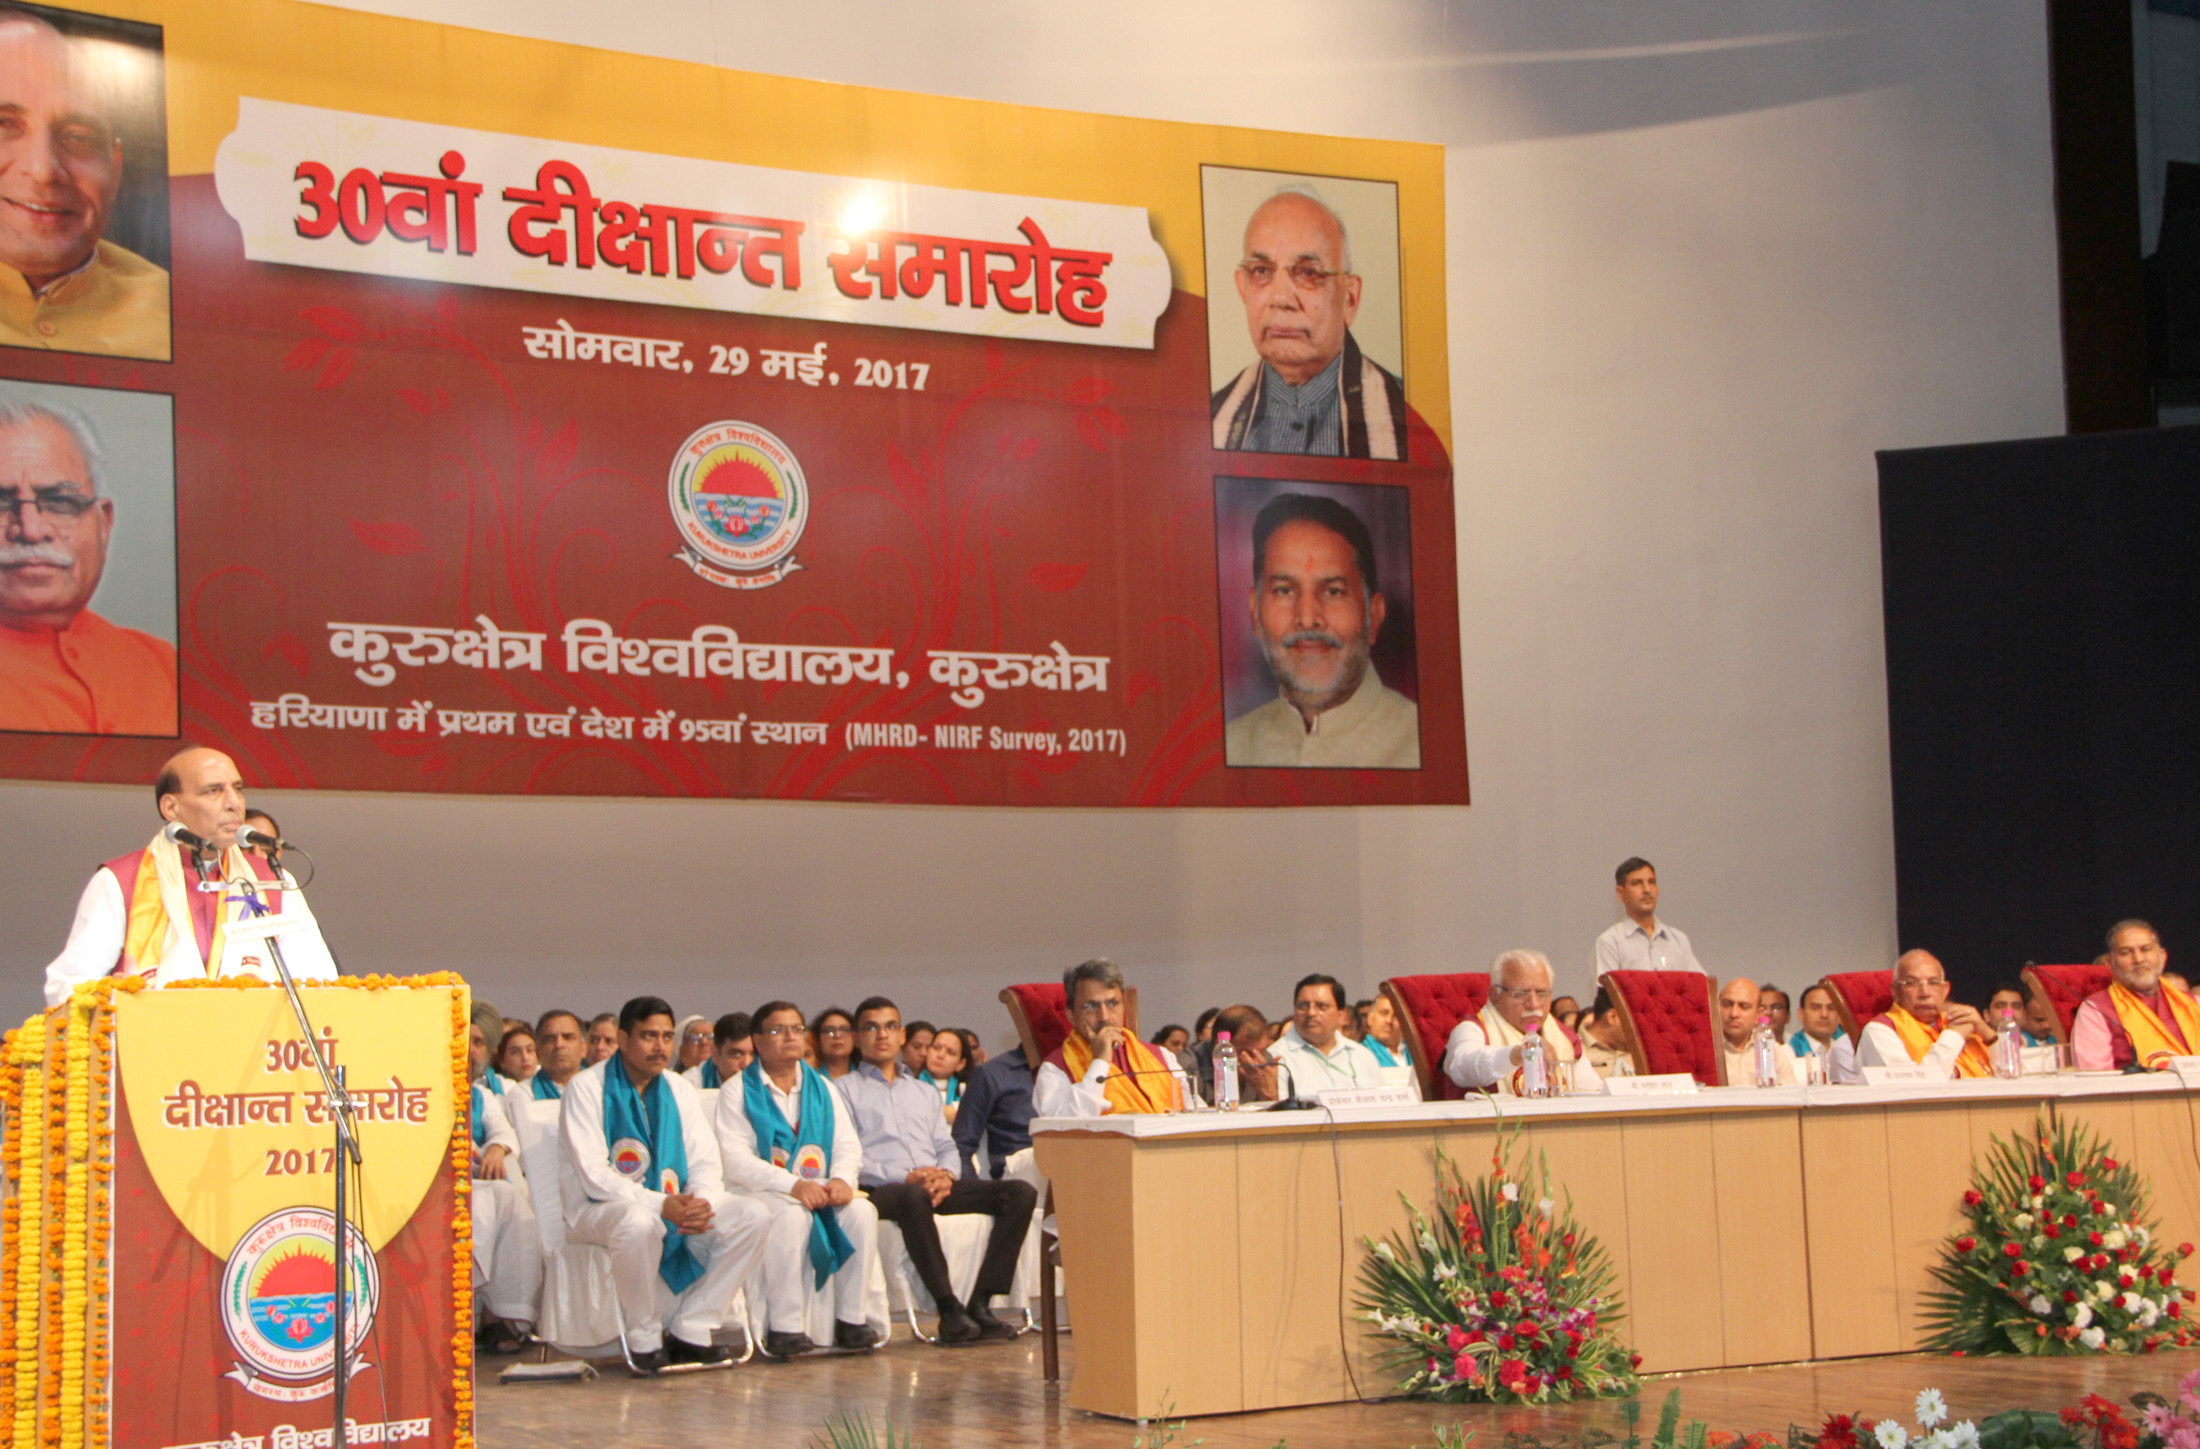 The Union Home Minister, Shri Rajnath Singh addressing at the 30th Convocation of Kurukshetra University, at Kurukshetra, Haryana on May 29, 2017. The Governor of Haryana, Prof. Kaptan Singh Solanki and the Chief Minister of Haryana, Shri Manohar Lal Khattar are also seen.